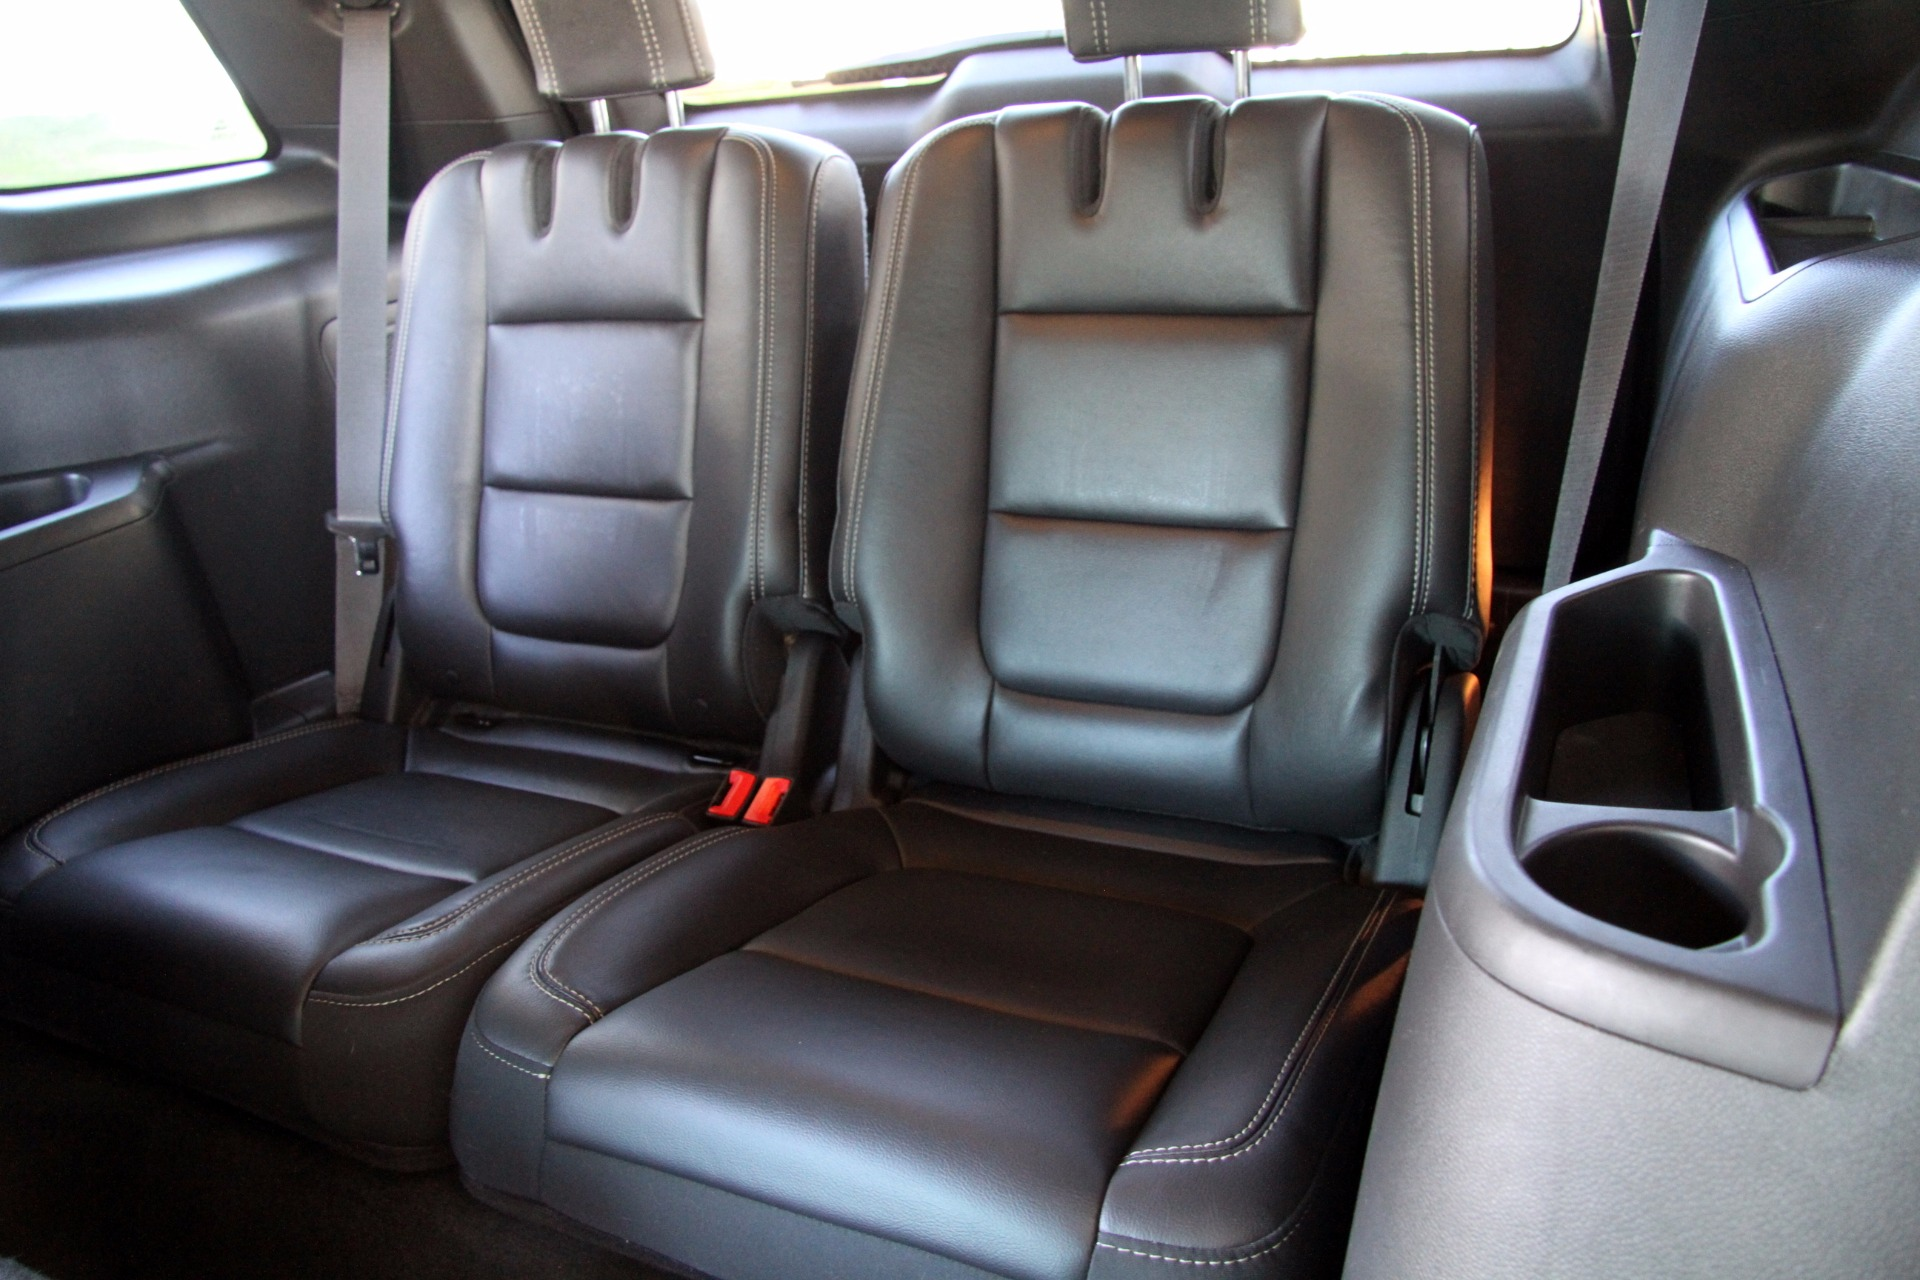 Ford Dealerships Near Me >> 2014 Ford Explorer Sport 4WD Stock # 6039A for sale near ...